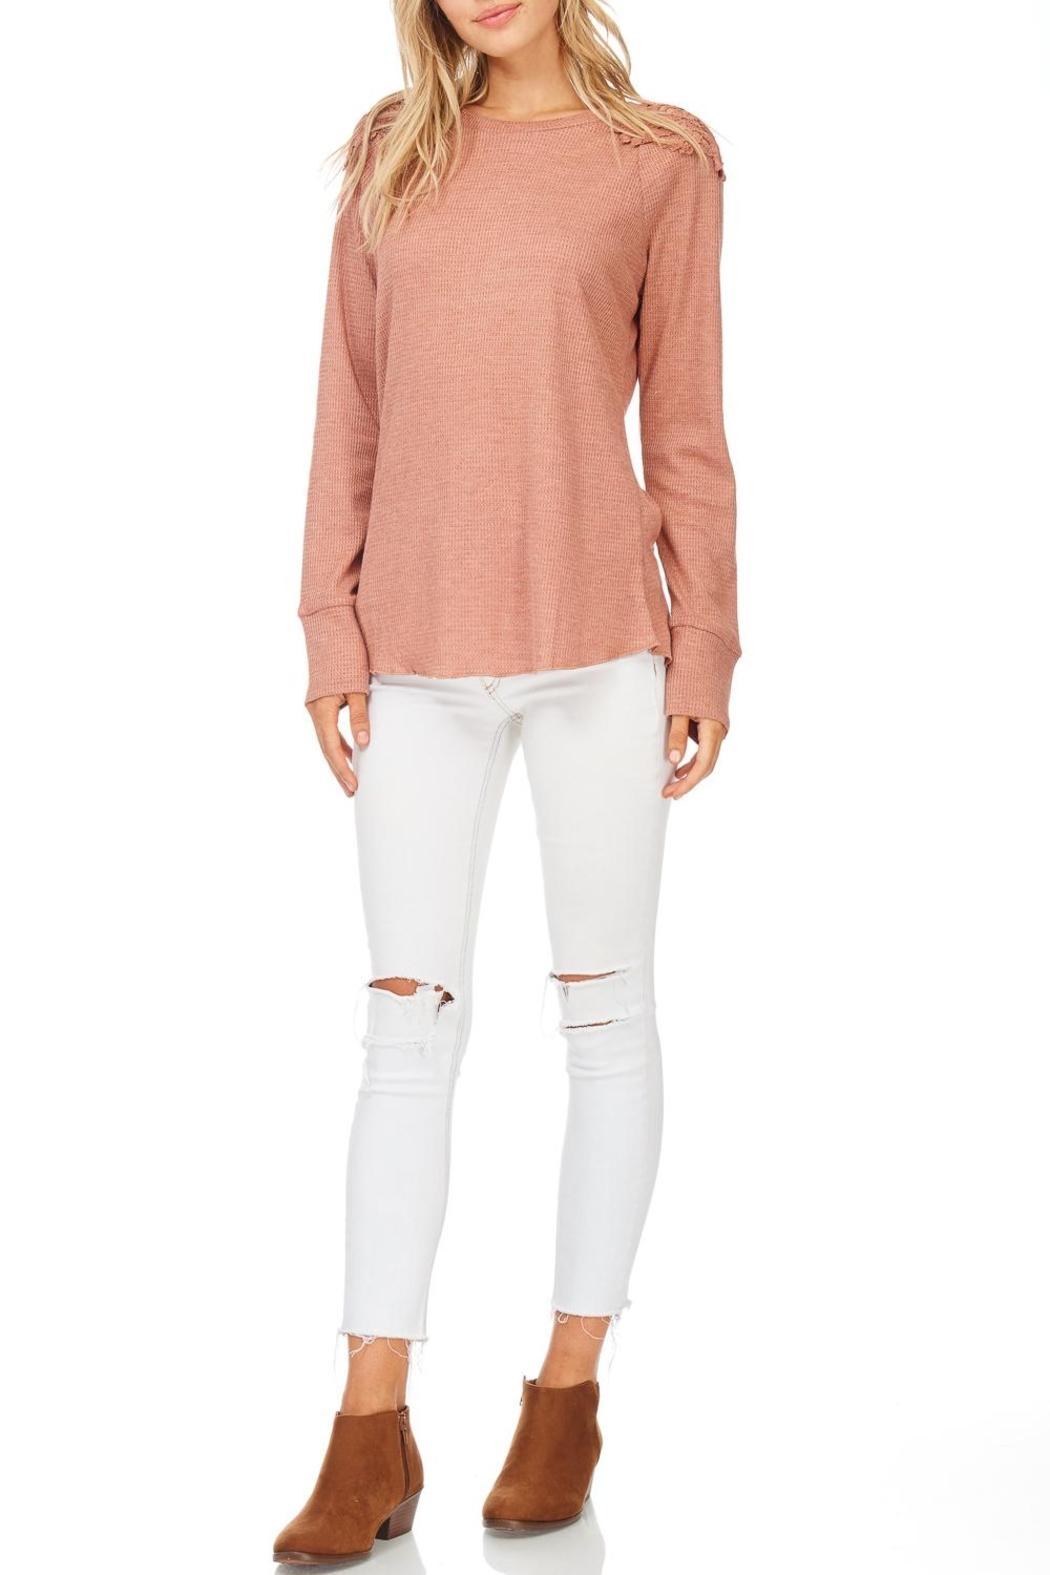 Hem & Thread Blush Lace Shoulder Top - Front Cropped Image